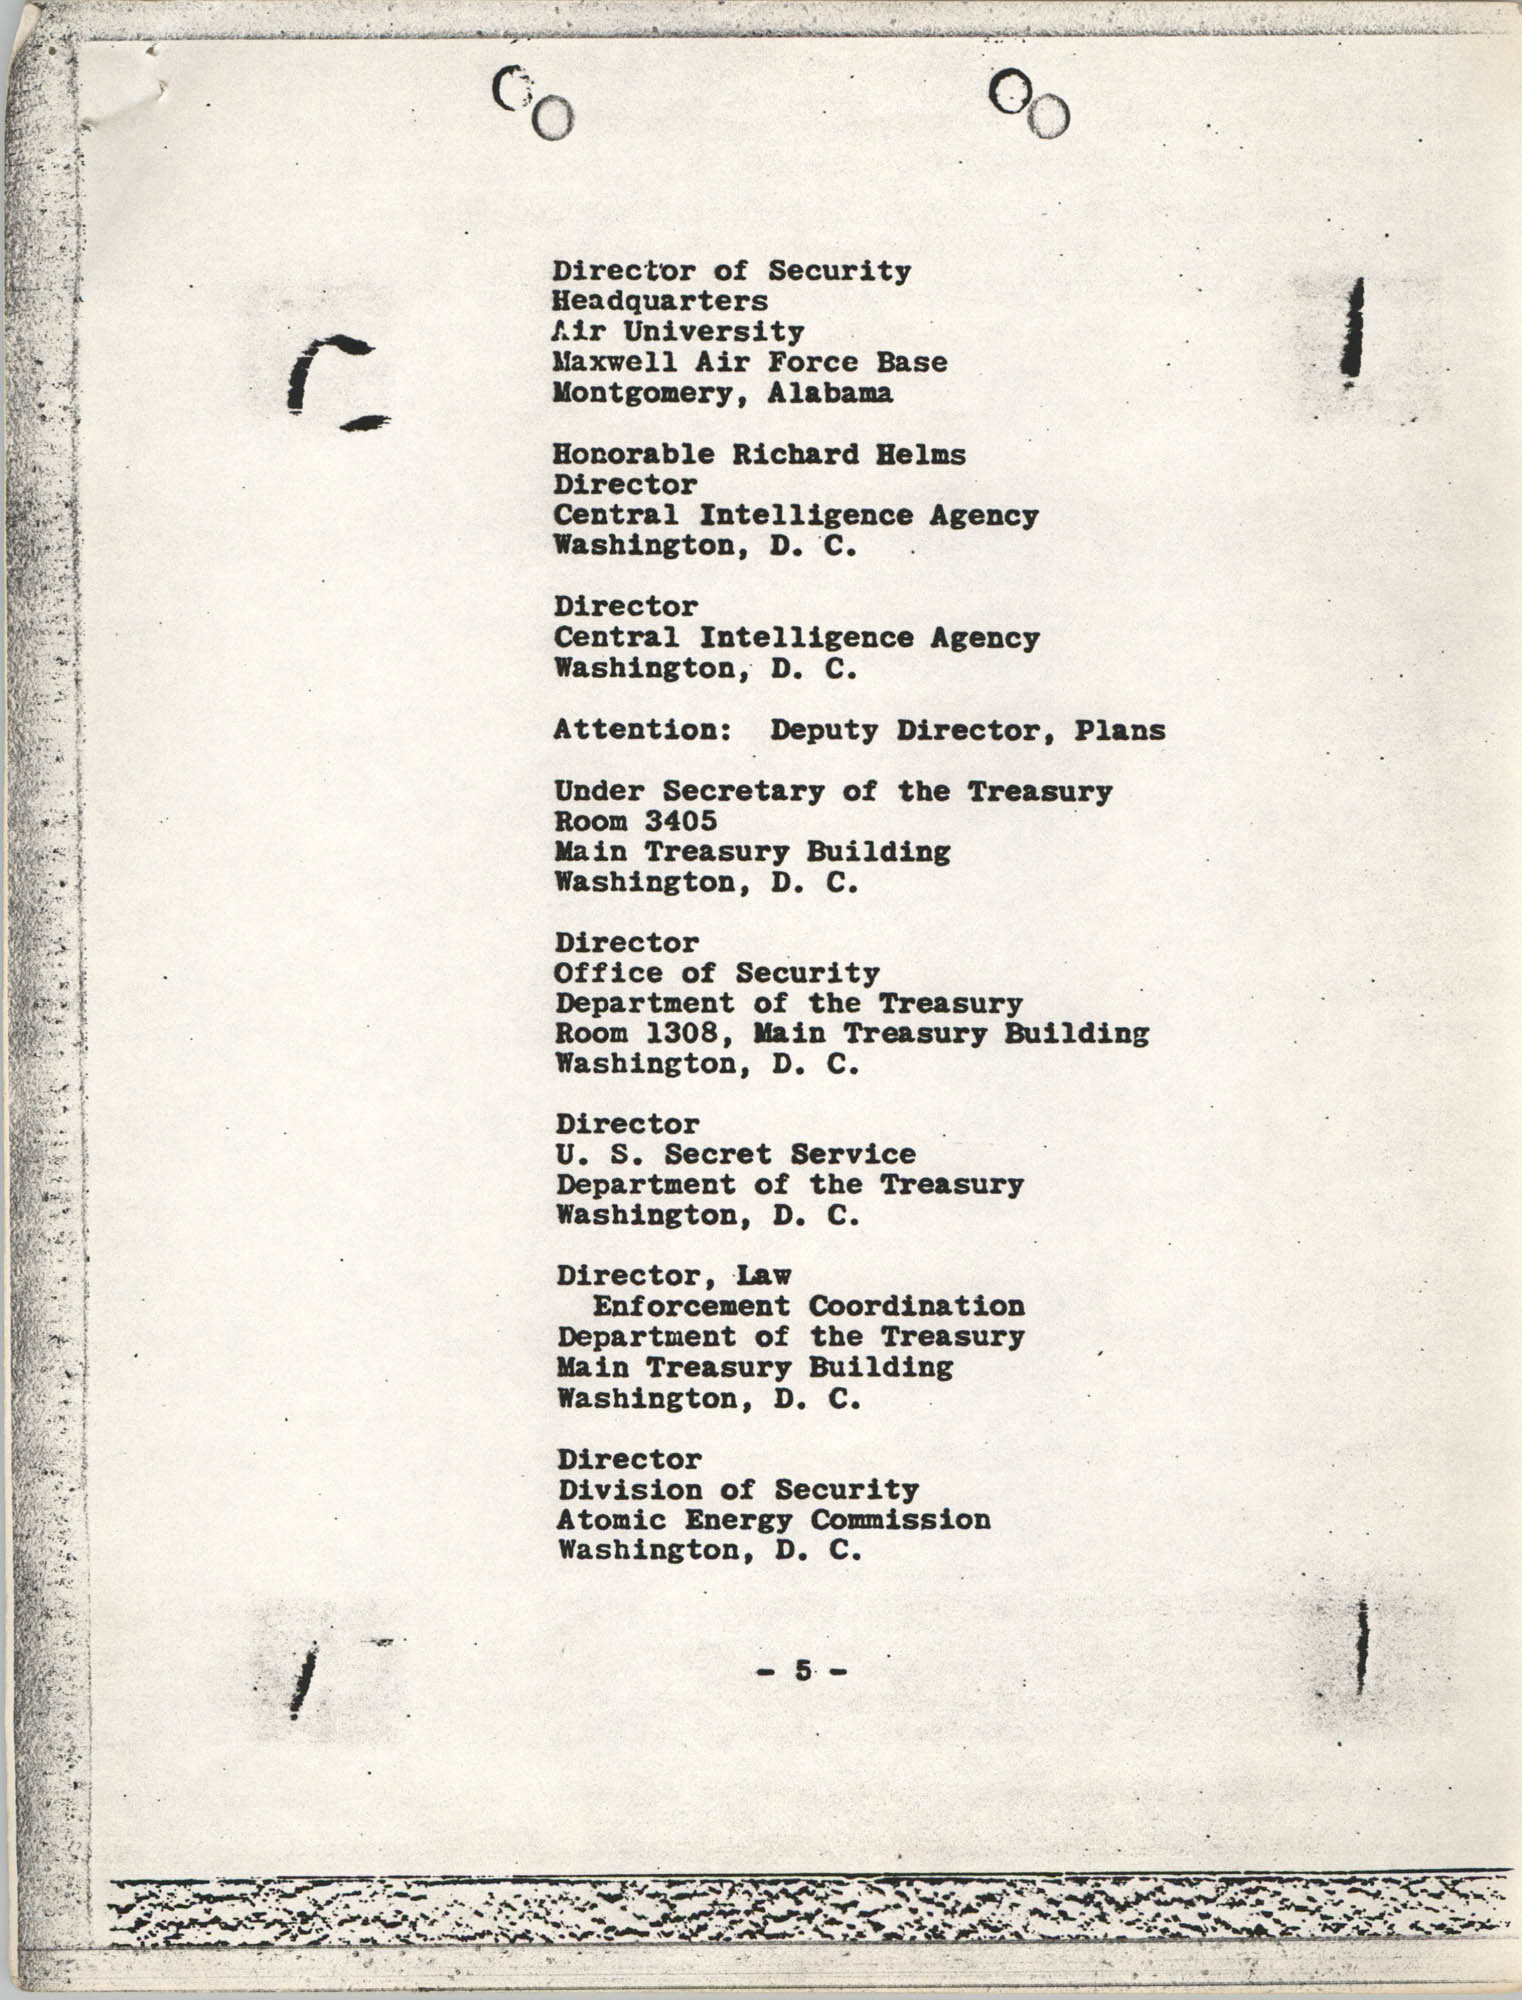 Student Nonviolent Coordinating Committee Lawsuit, Staff List Page 5